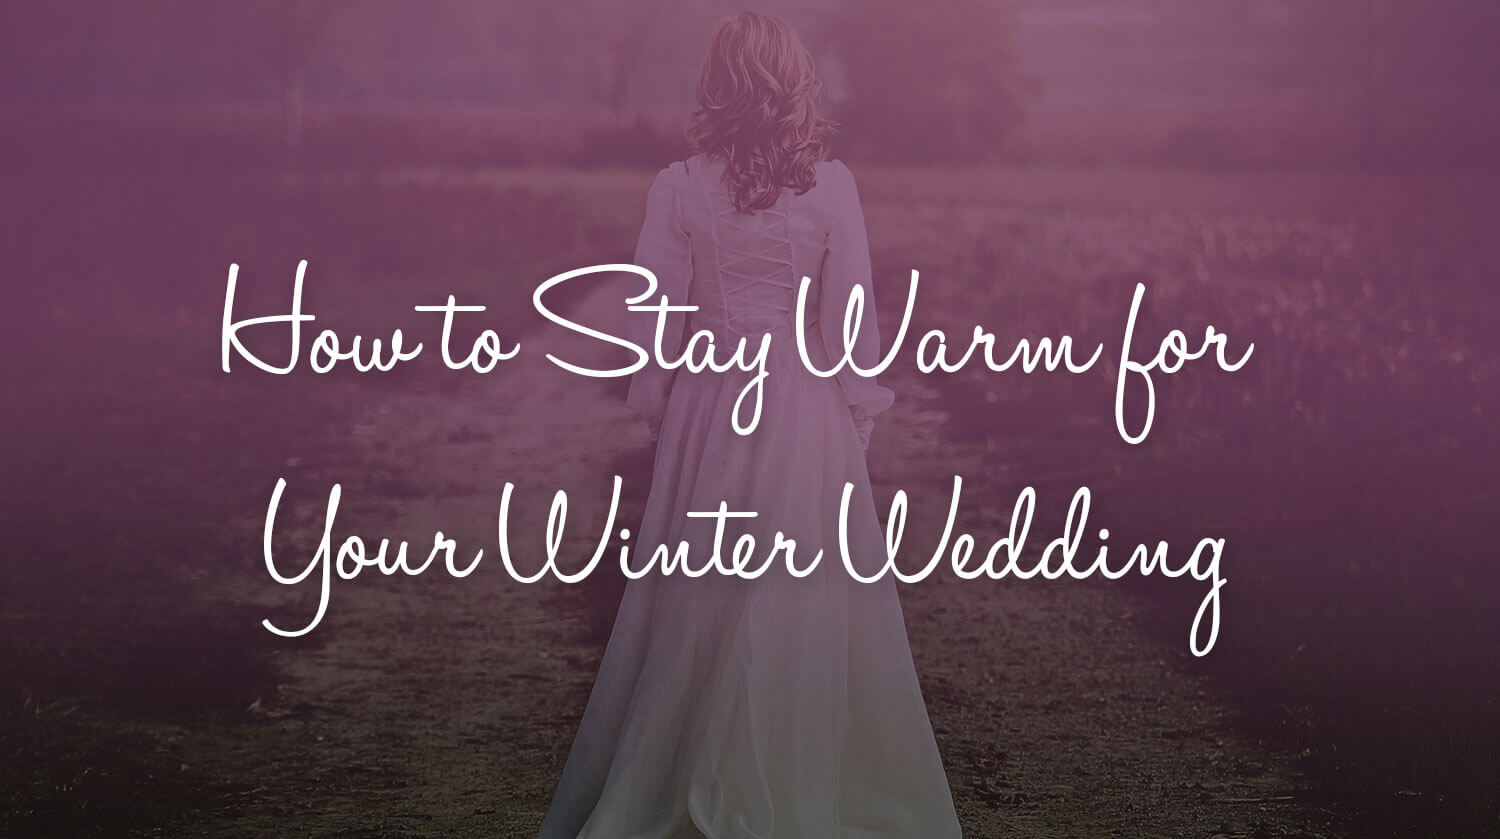 How to Stay Warm for Your Winter Wedding